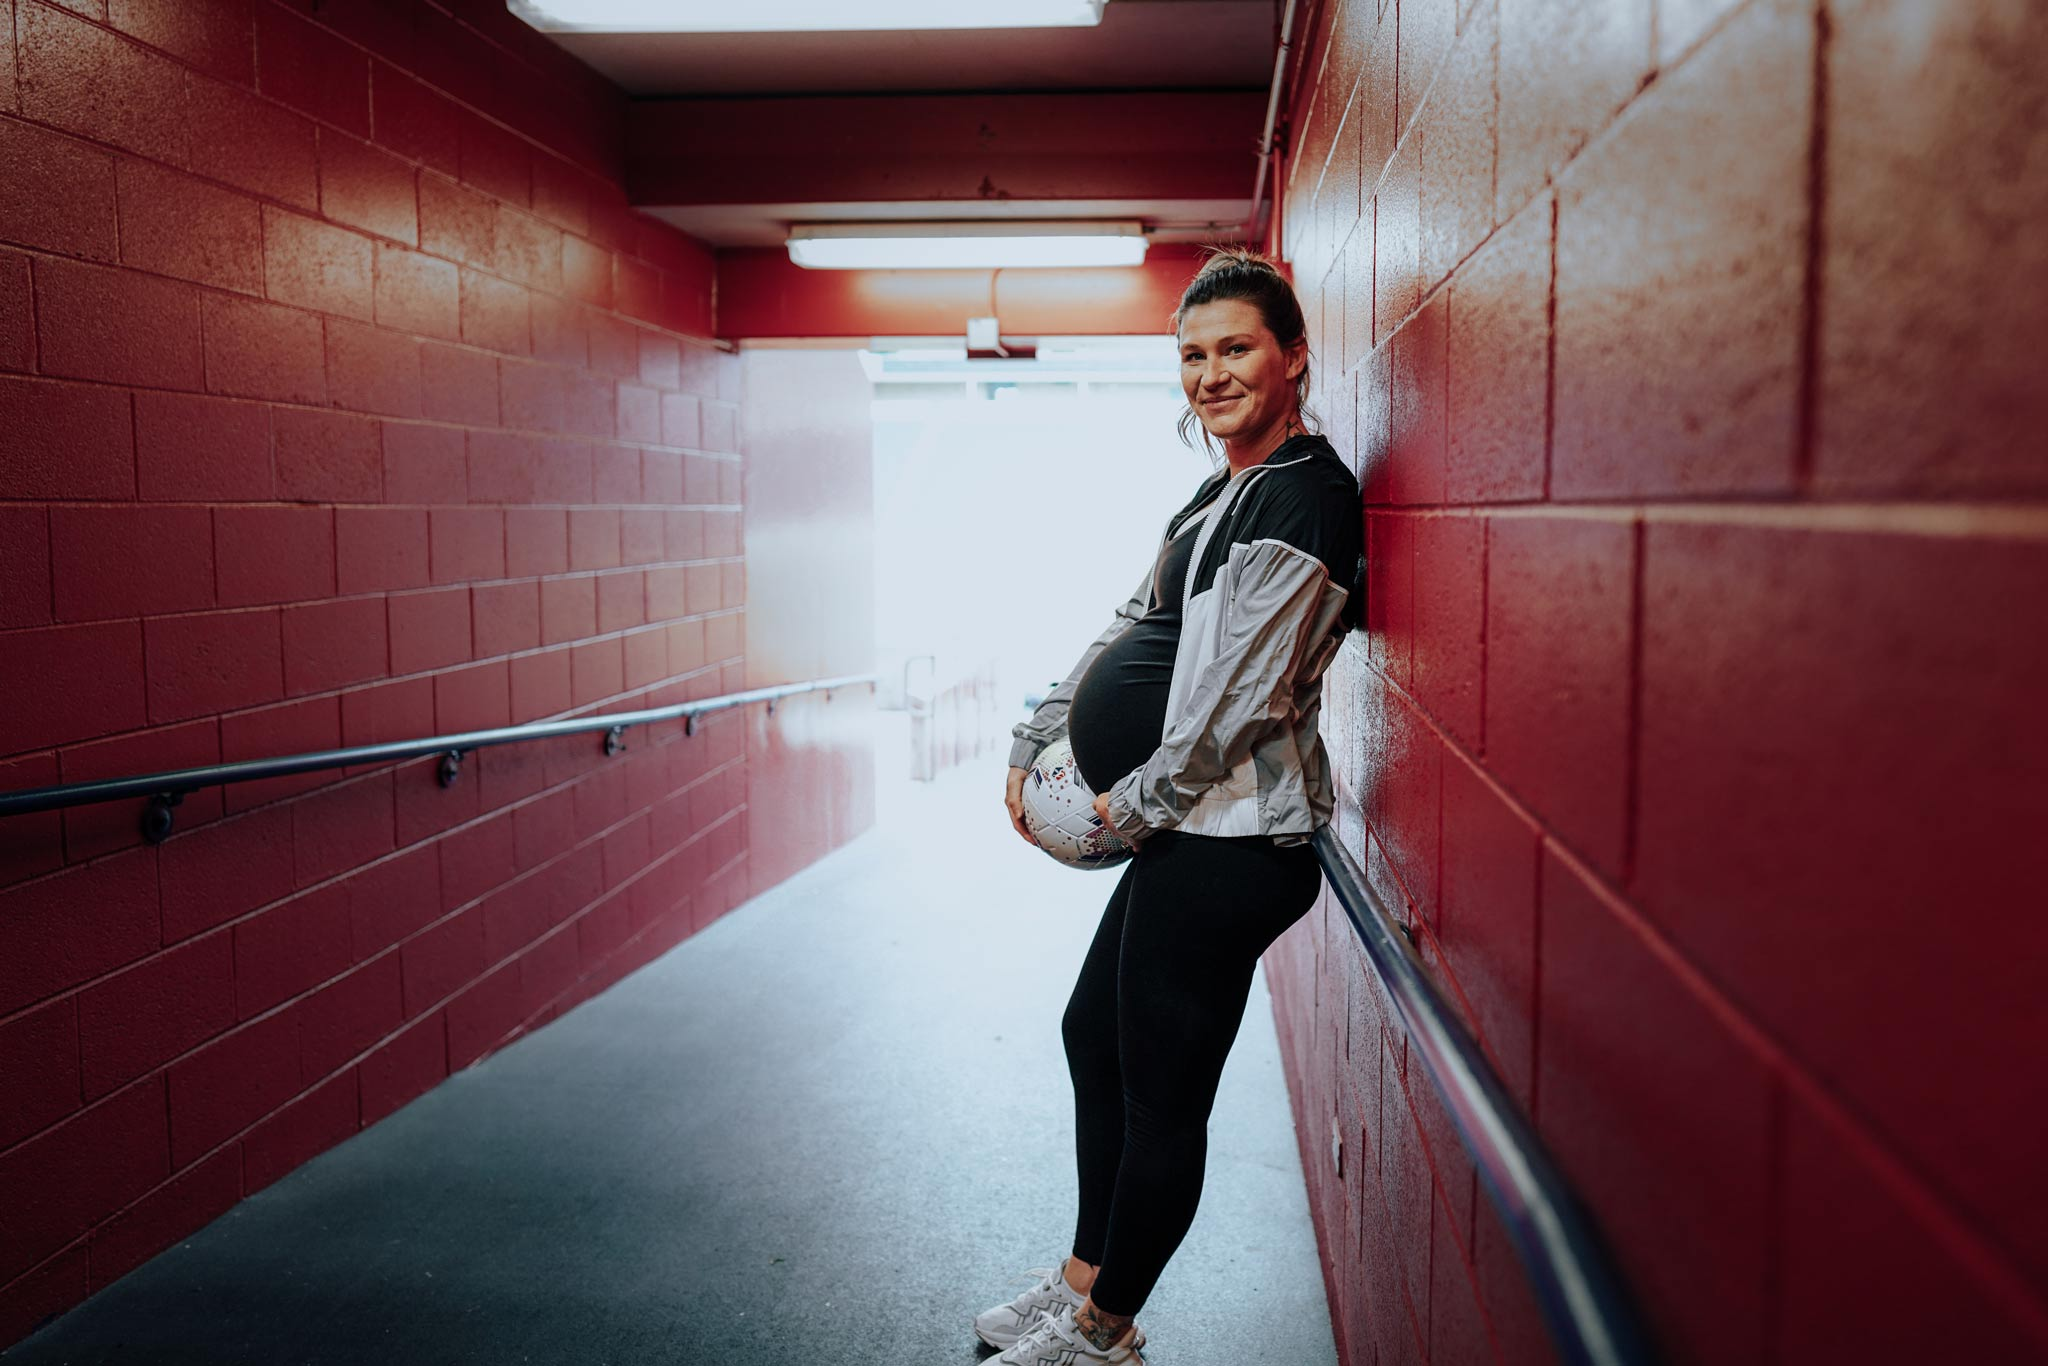 Arin holds a soccer ball next to her baby bump while leaning in the hallway that leads to the soccer field she plays at.